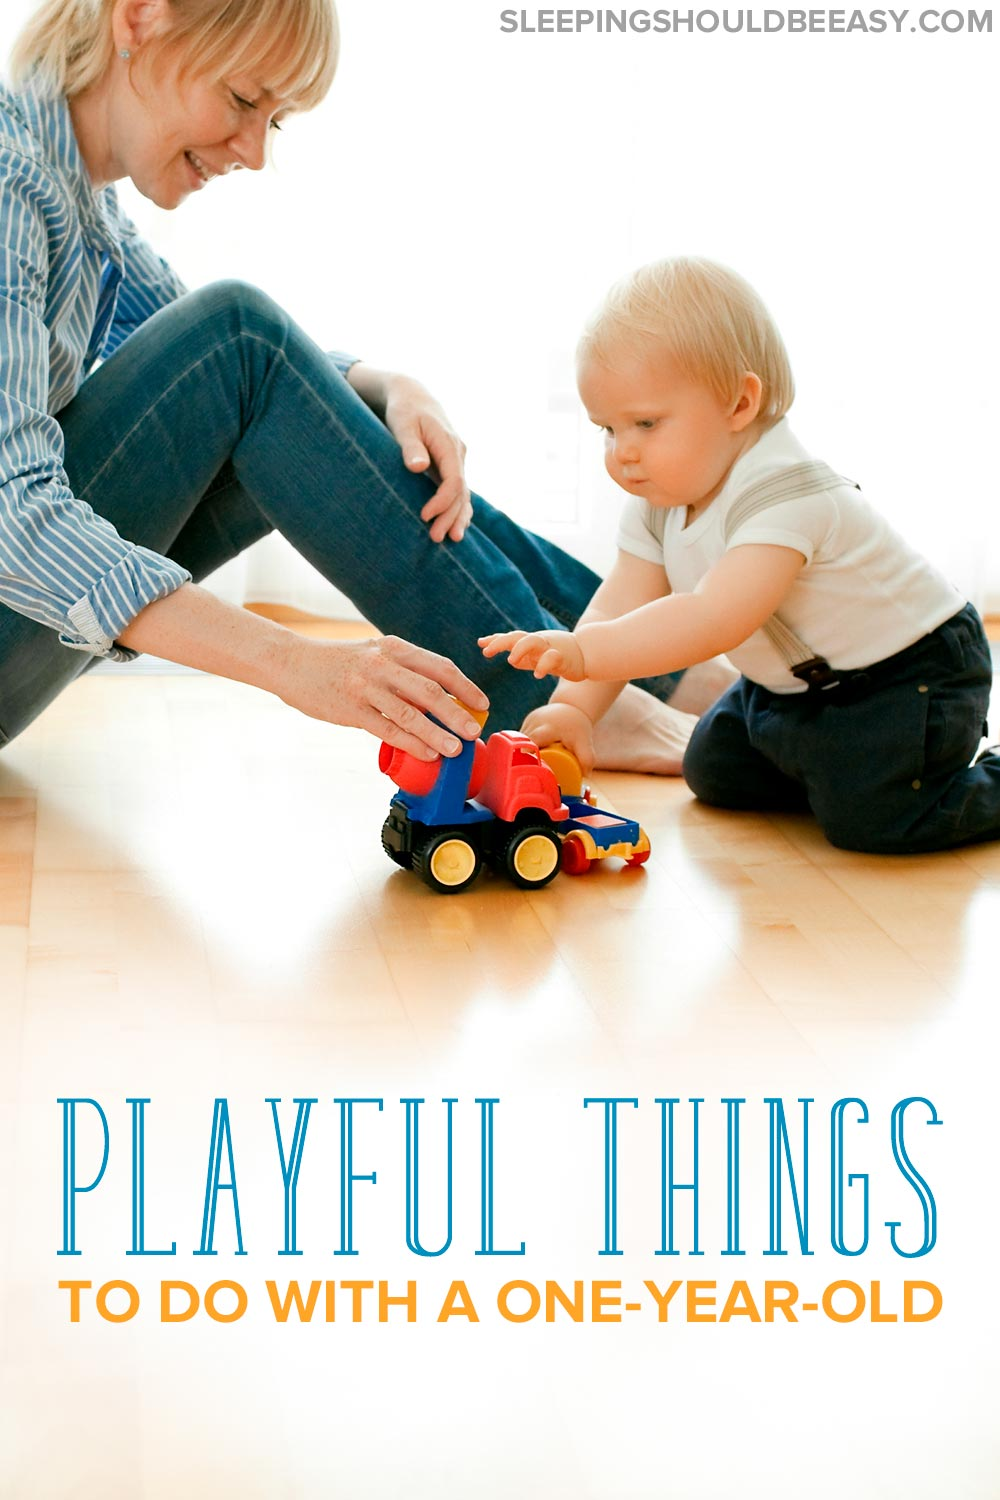 Mom and a 1 year old playing with a toy truck on the floor